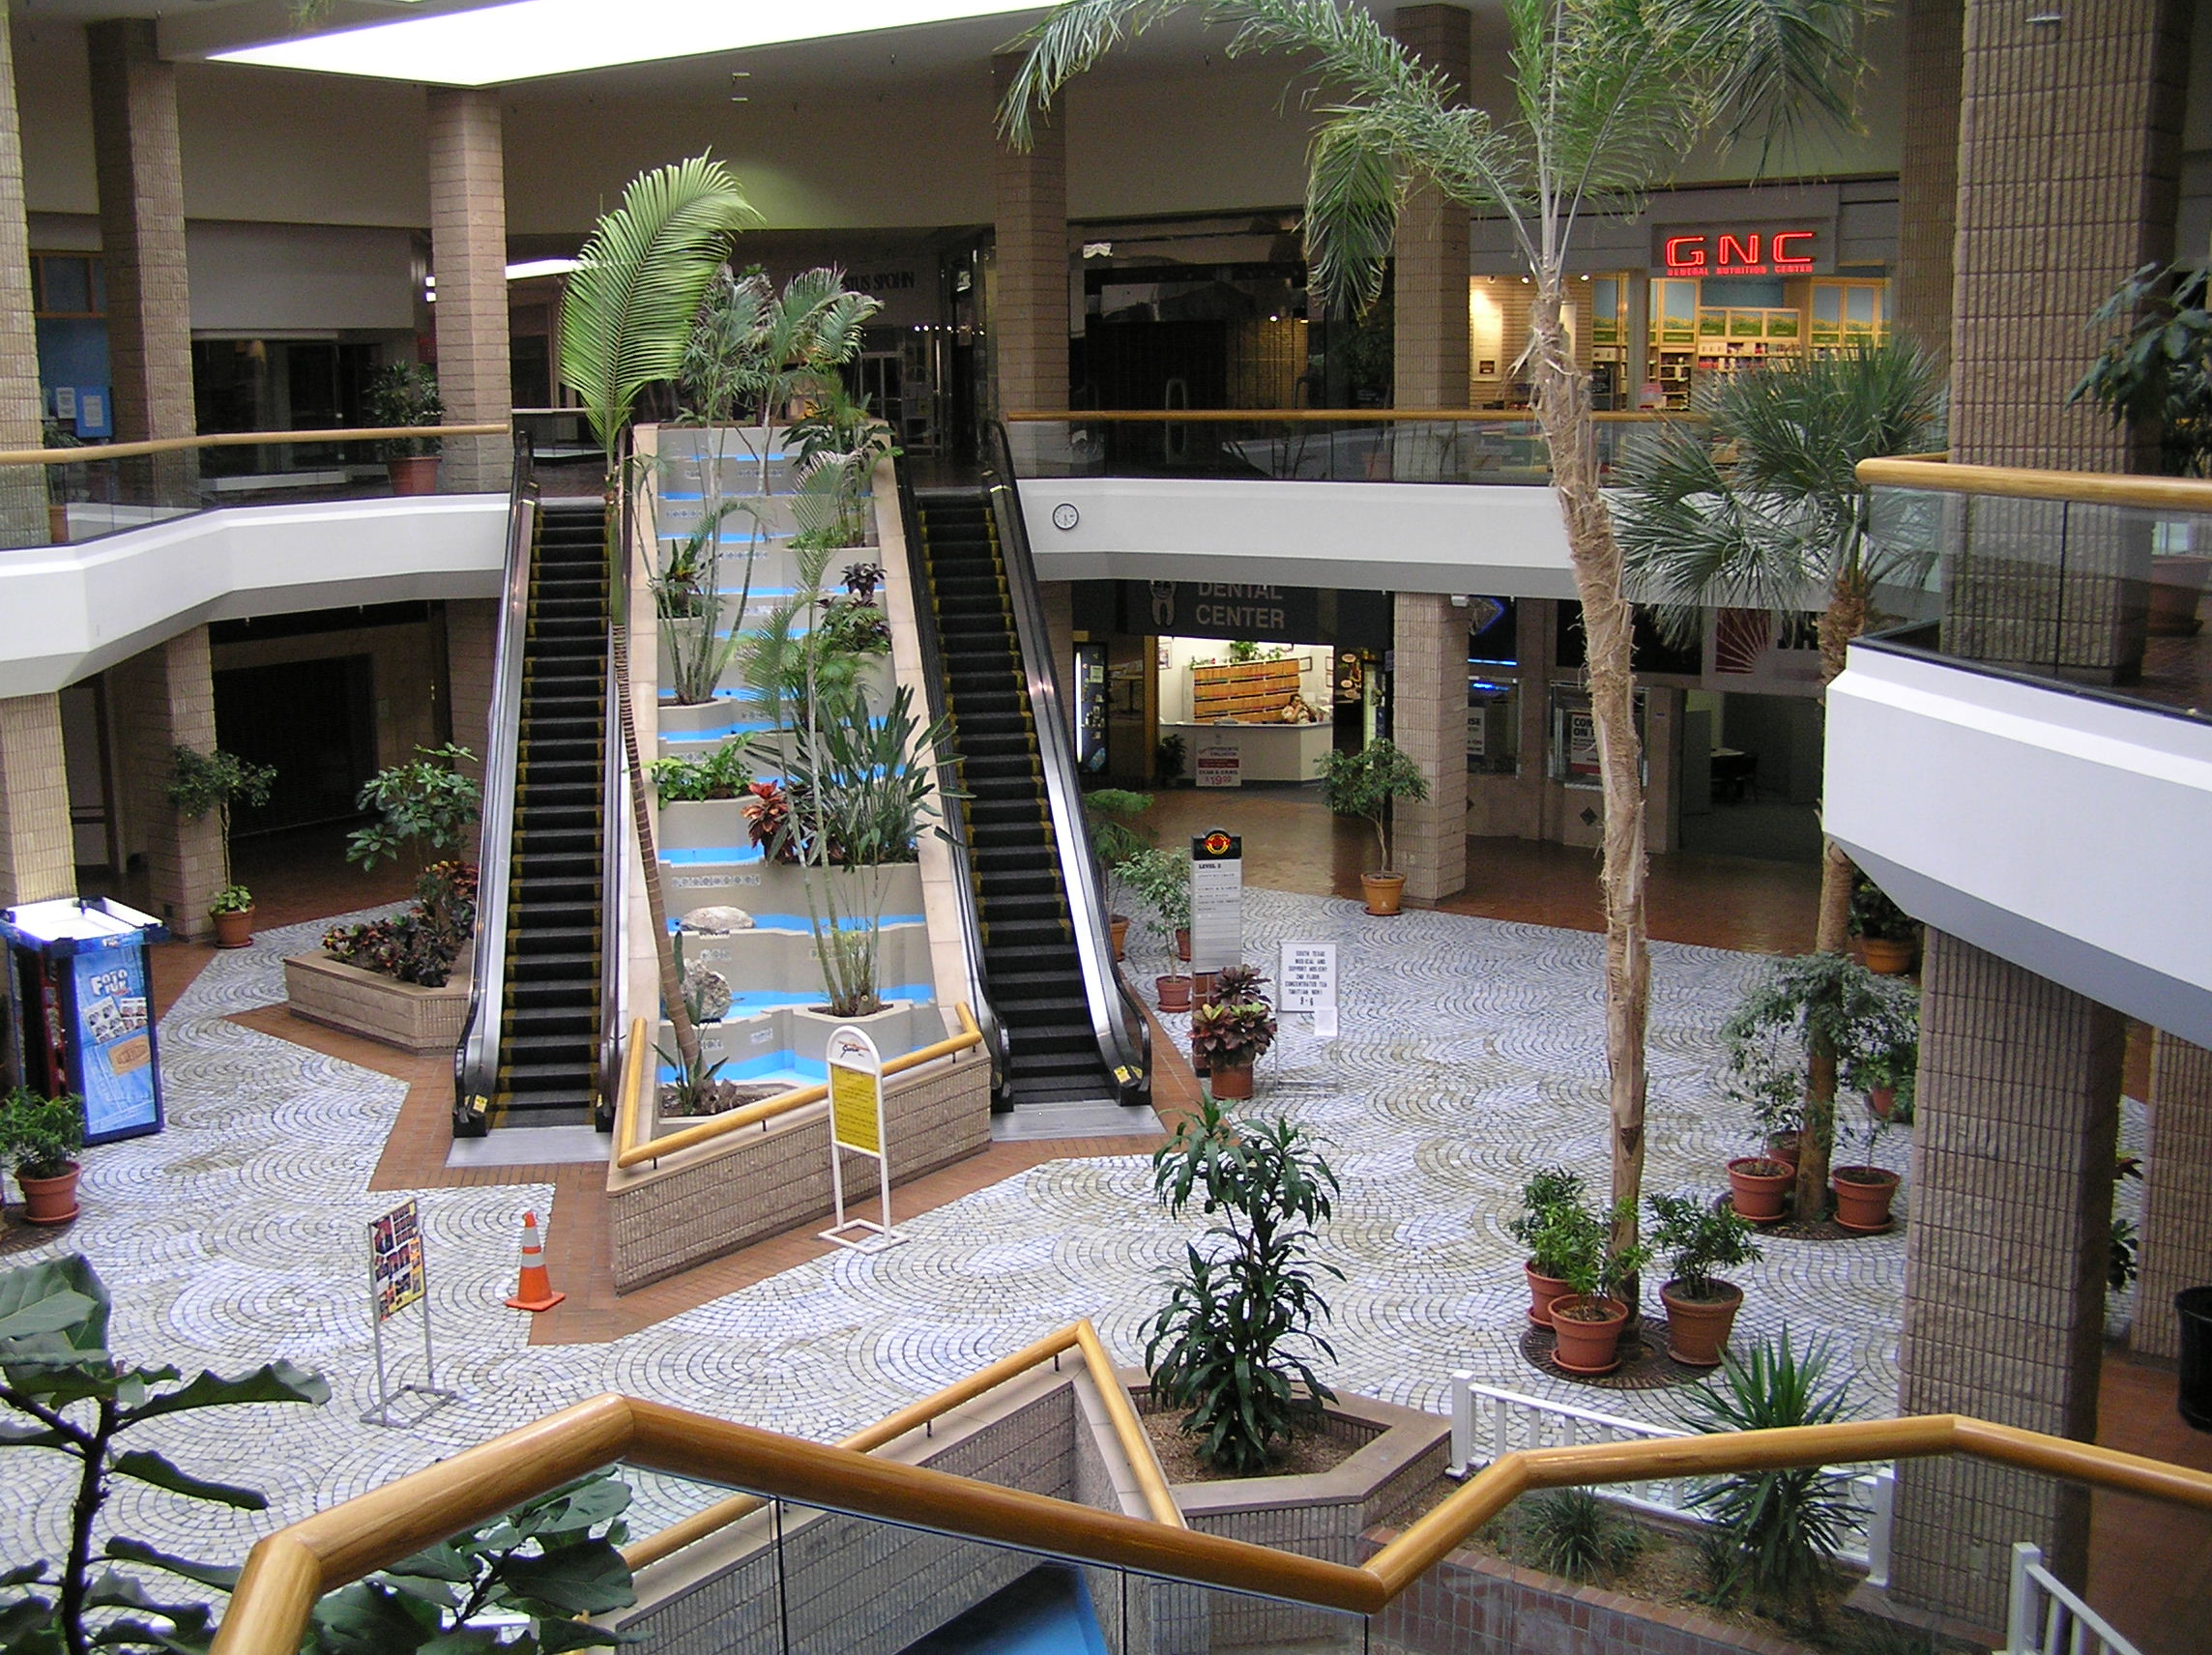 Sunrise Mall center court in Corpus Christi, TX